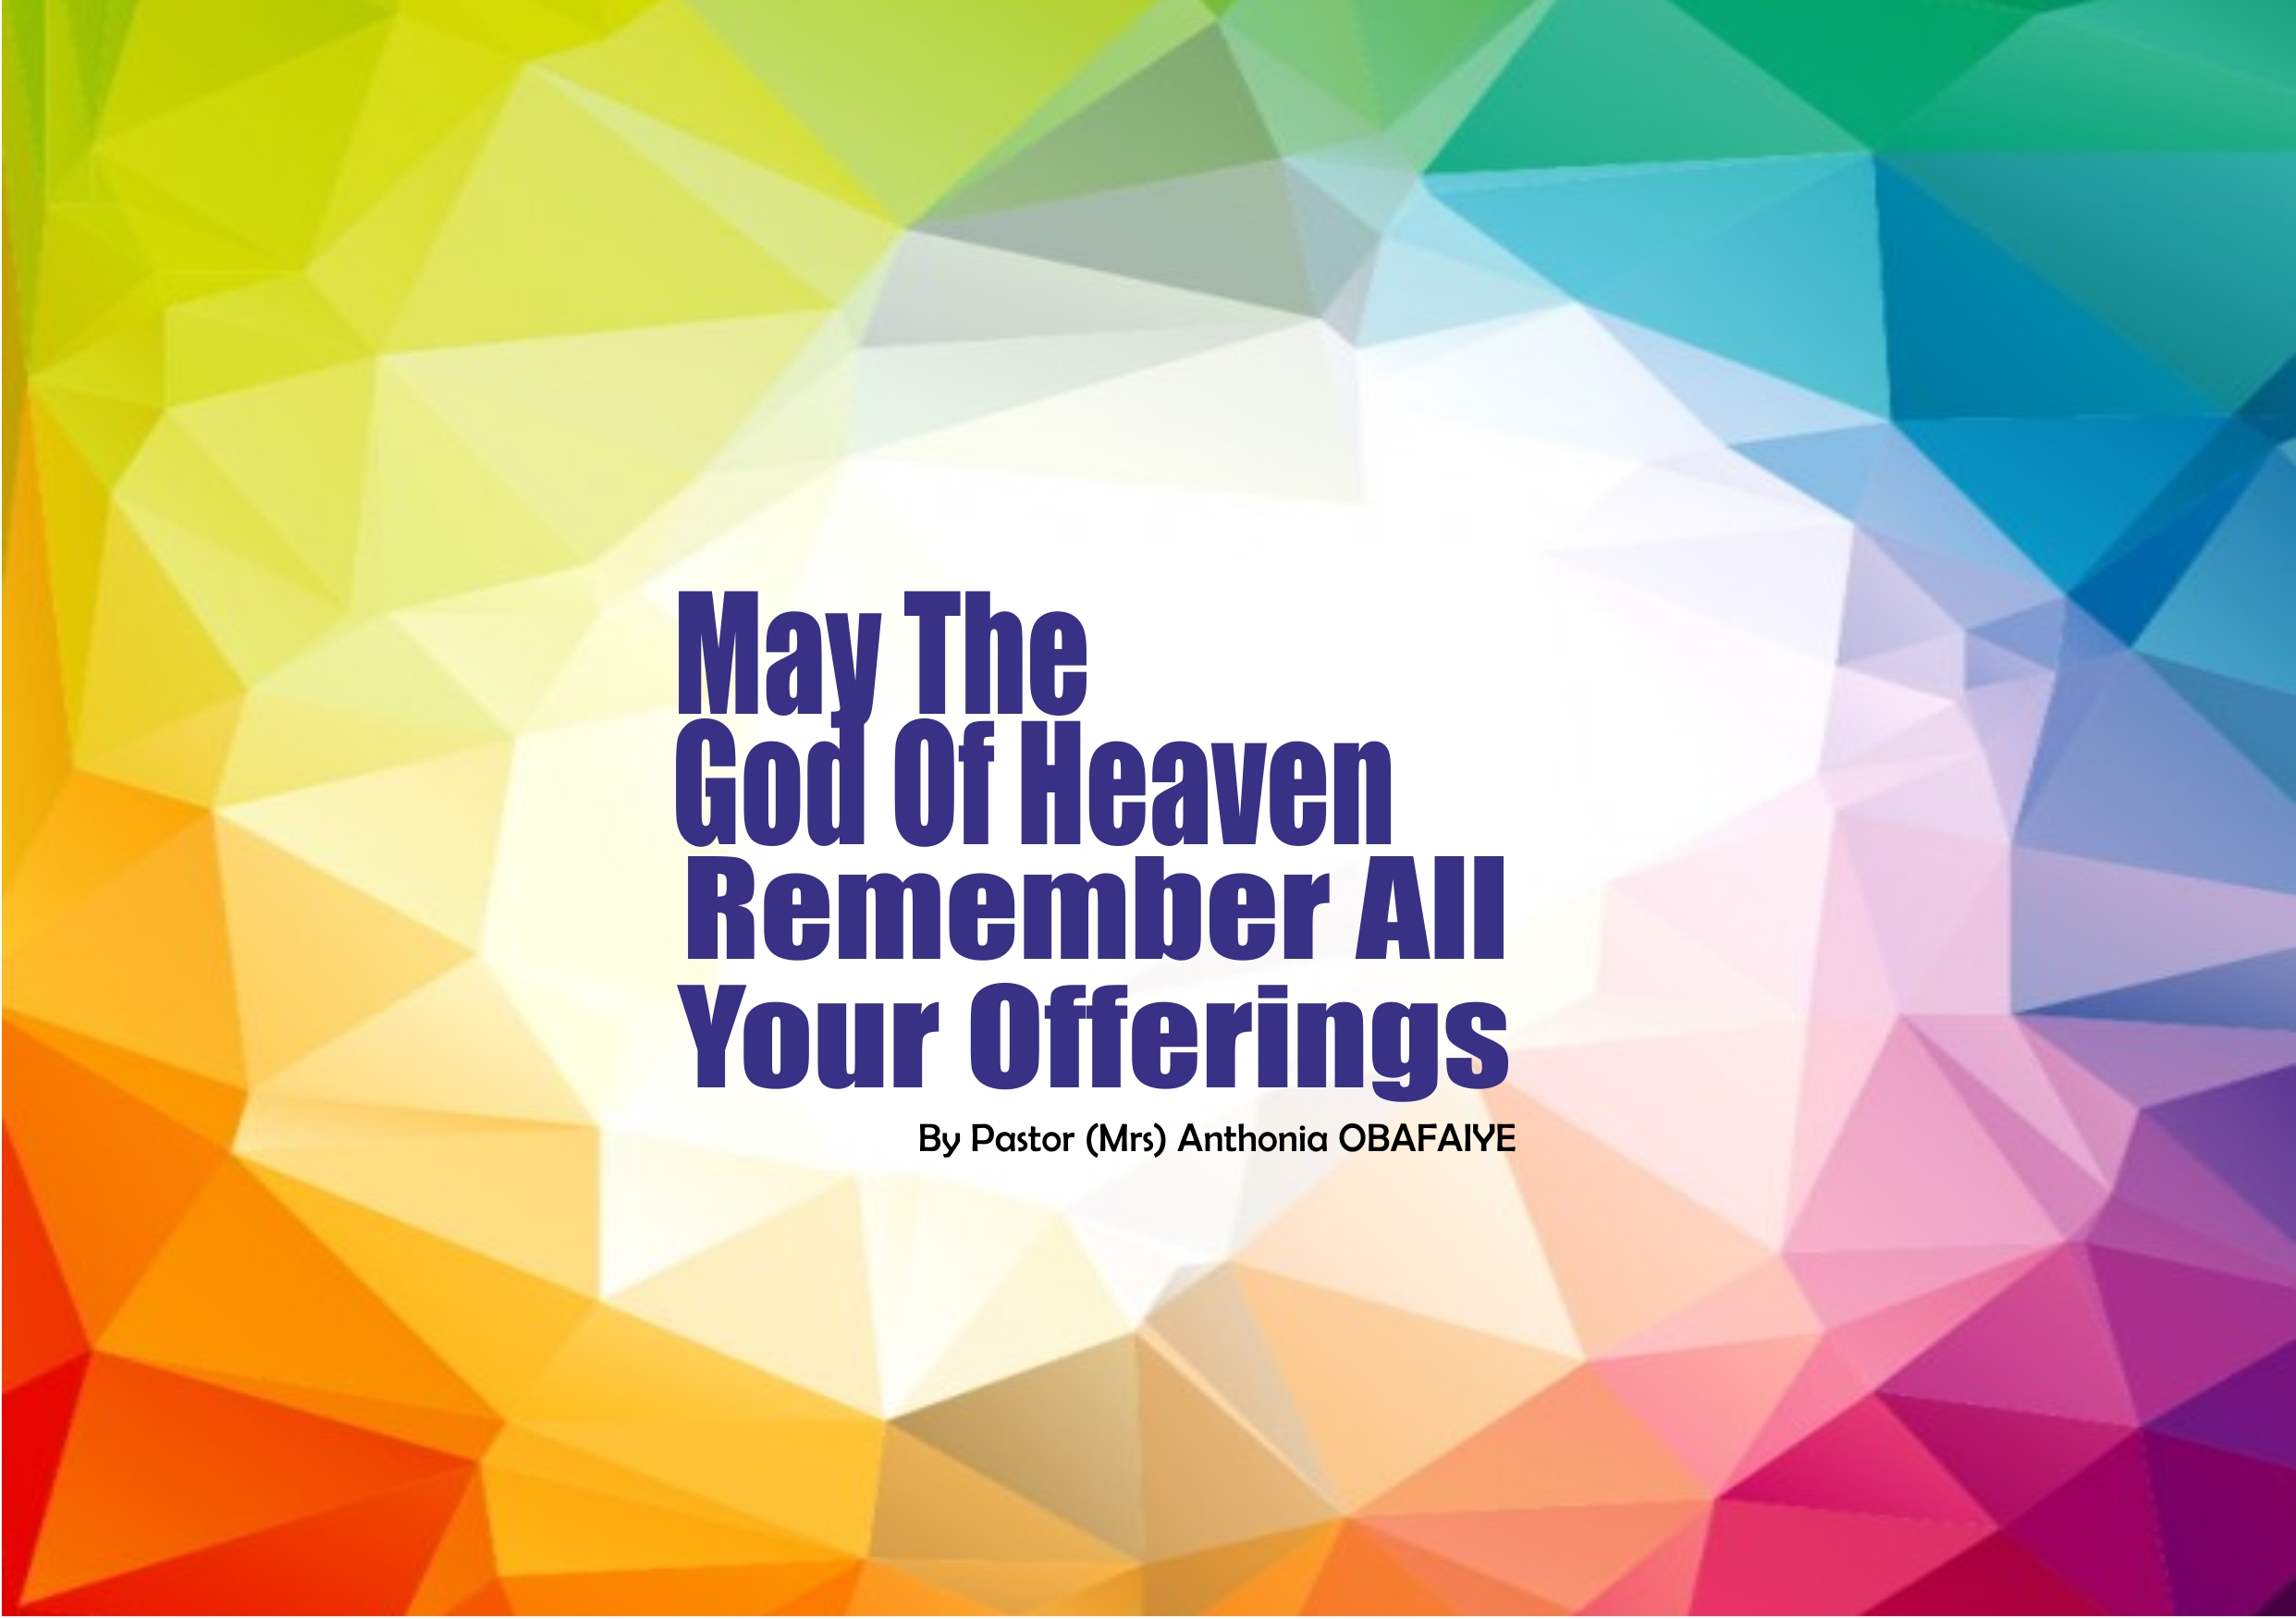 May The God of Heaven Remember All Your Offerings, by Pastor Anthonia Obafaiye